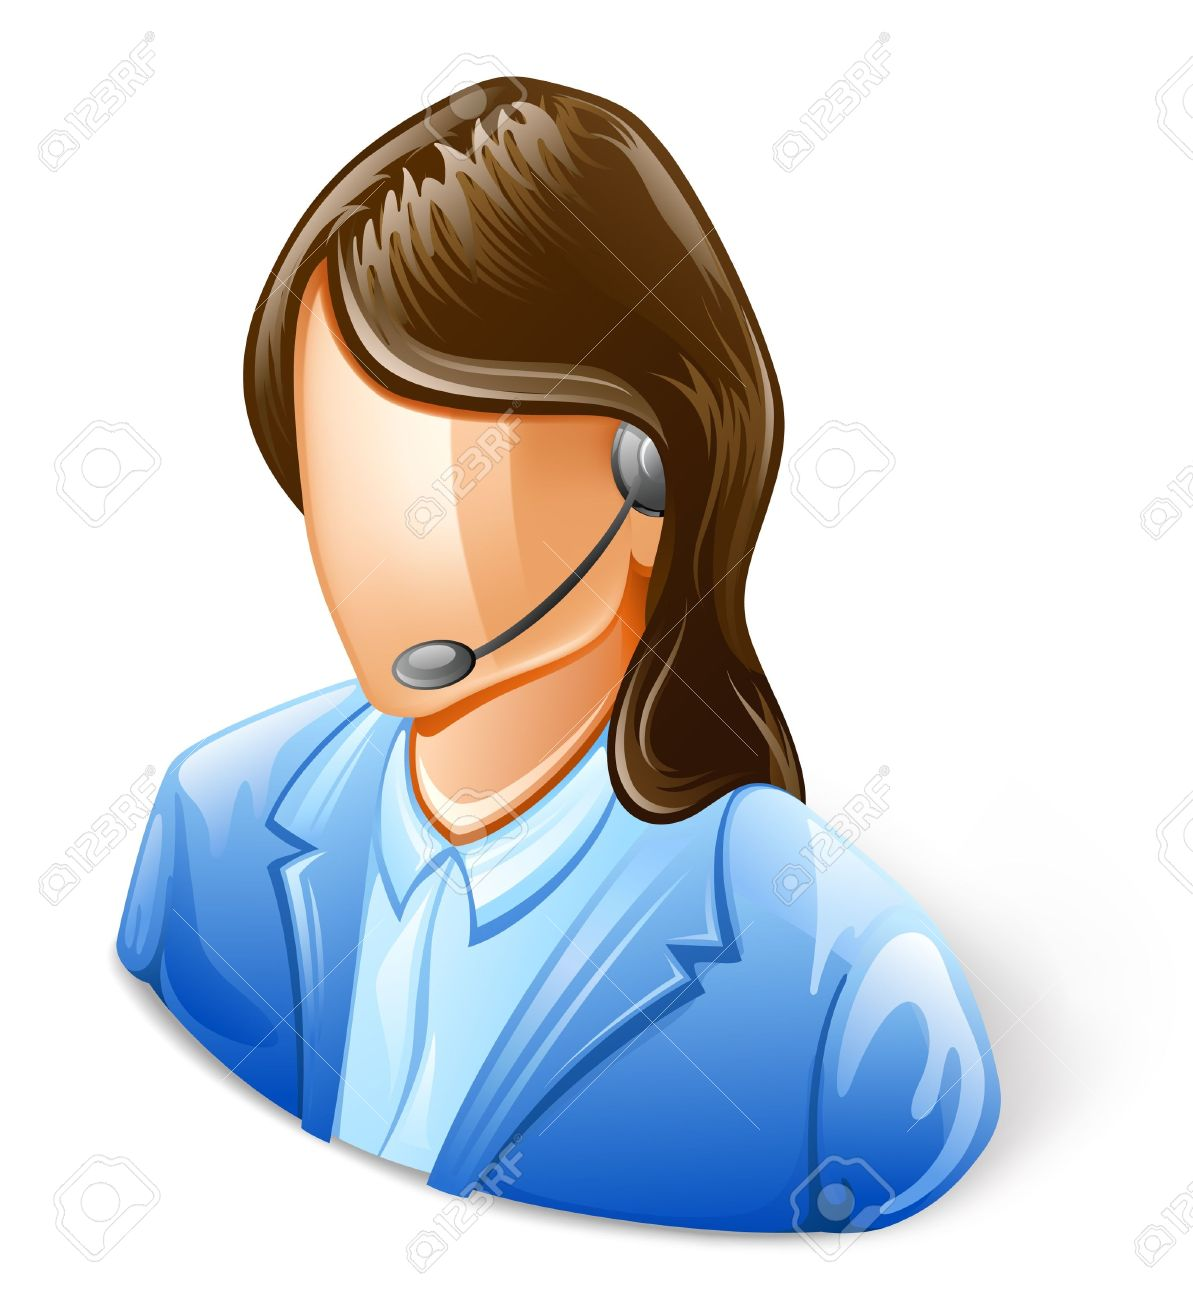 Customer service agent clipart png library stock Customer service representative clipart - ClipartFest png library stock